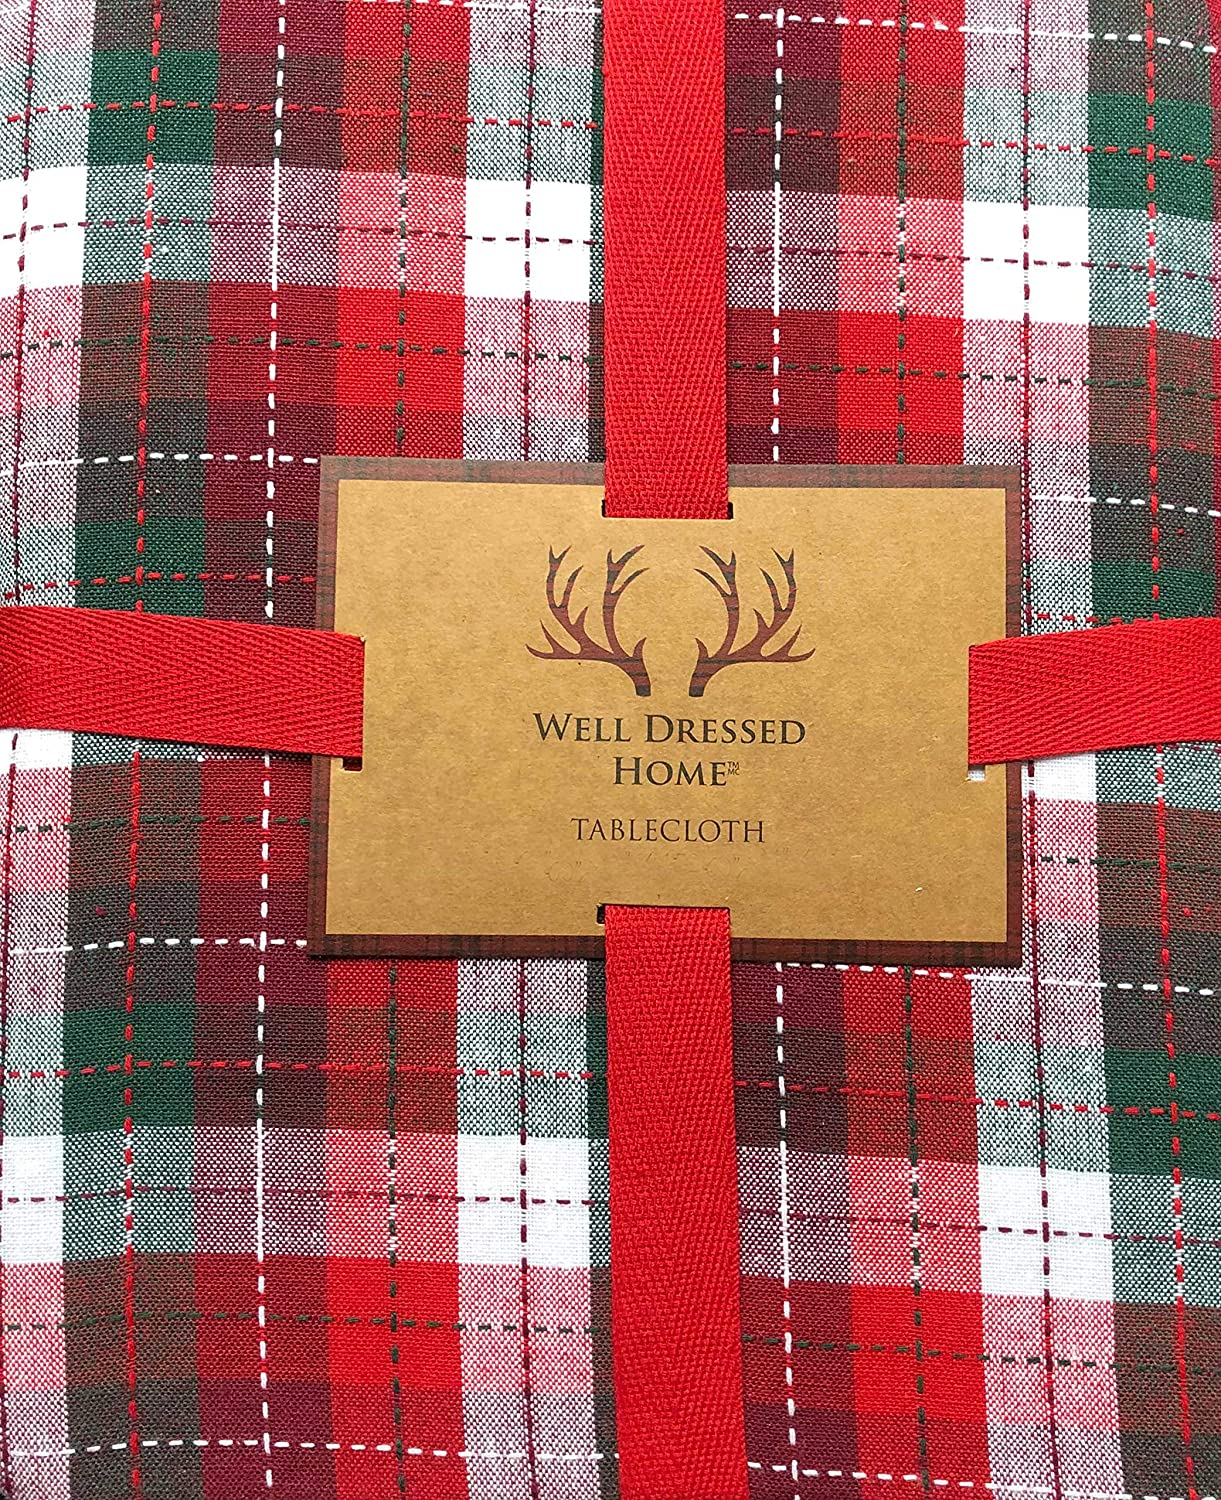 Well Dressed Home Tablecloth Holiday Christmas Plaid Pattern with Red Green White Checked Checkered Stripes, and Thin Sewn Red Green White Thread Stripes 60 Inches x 84 Inches